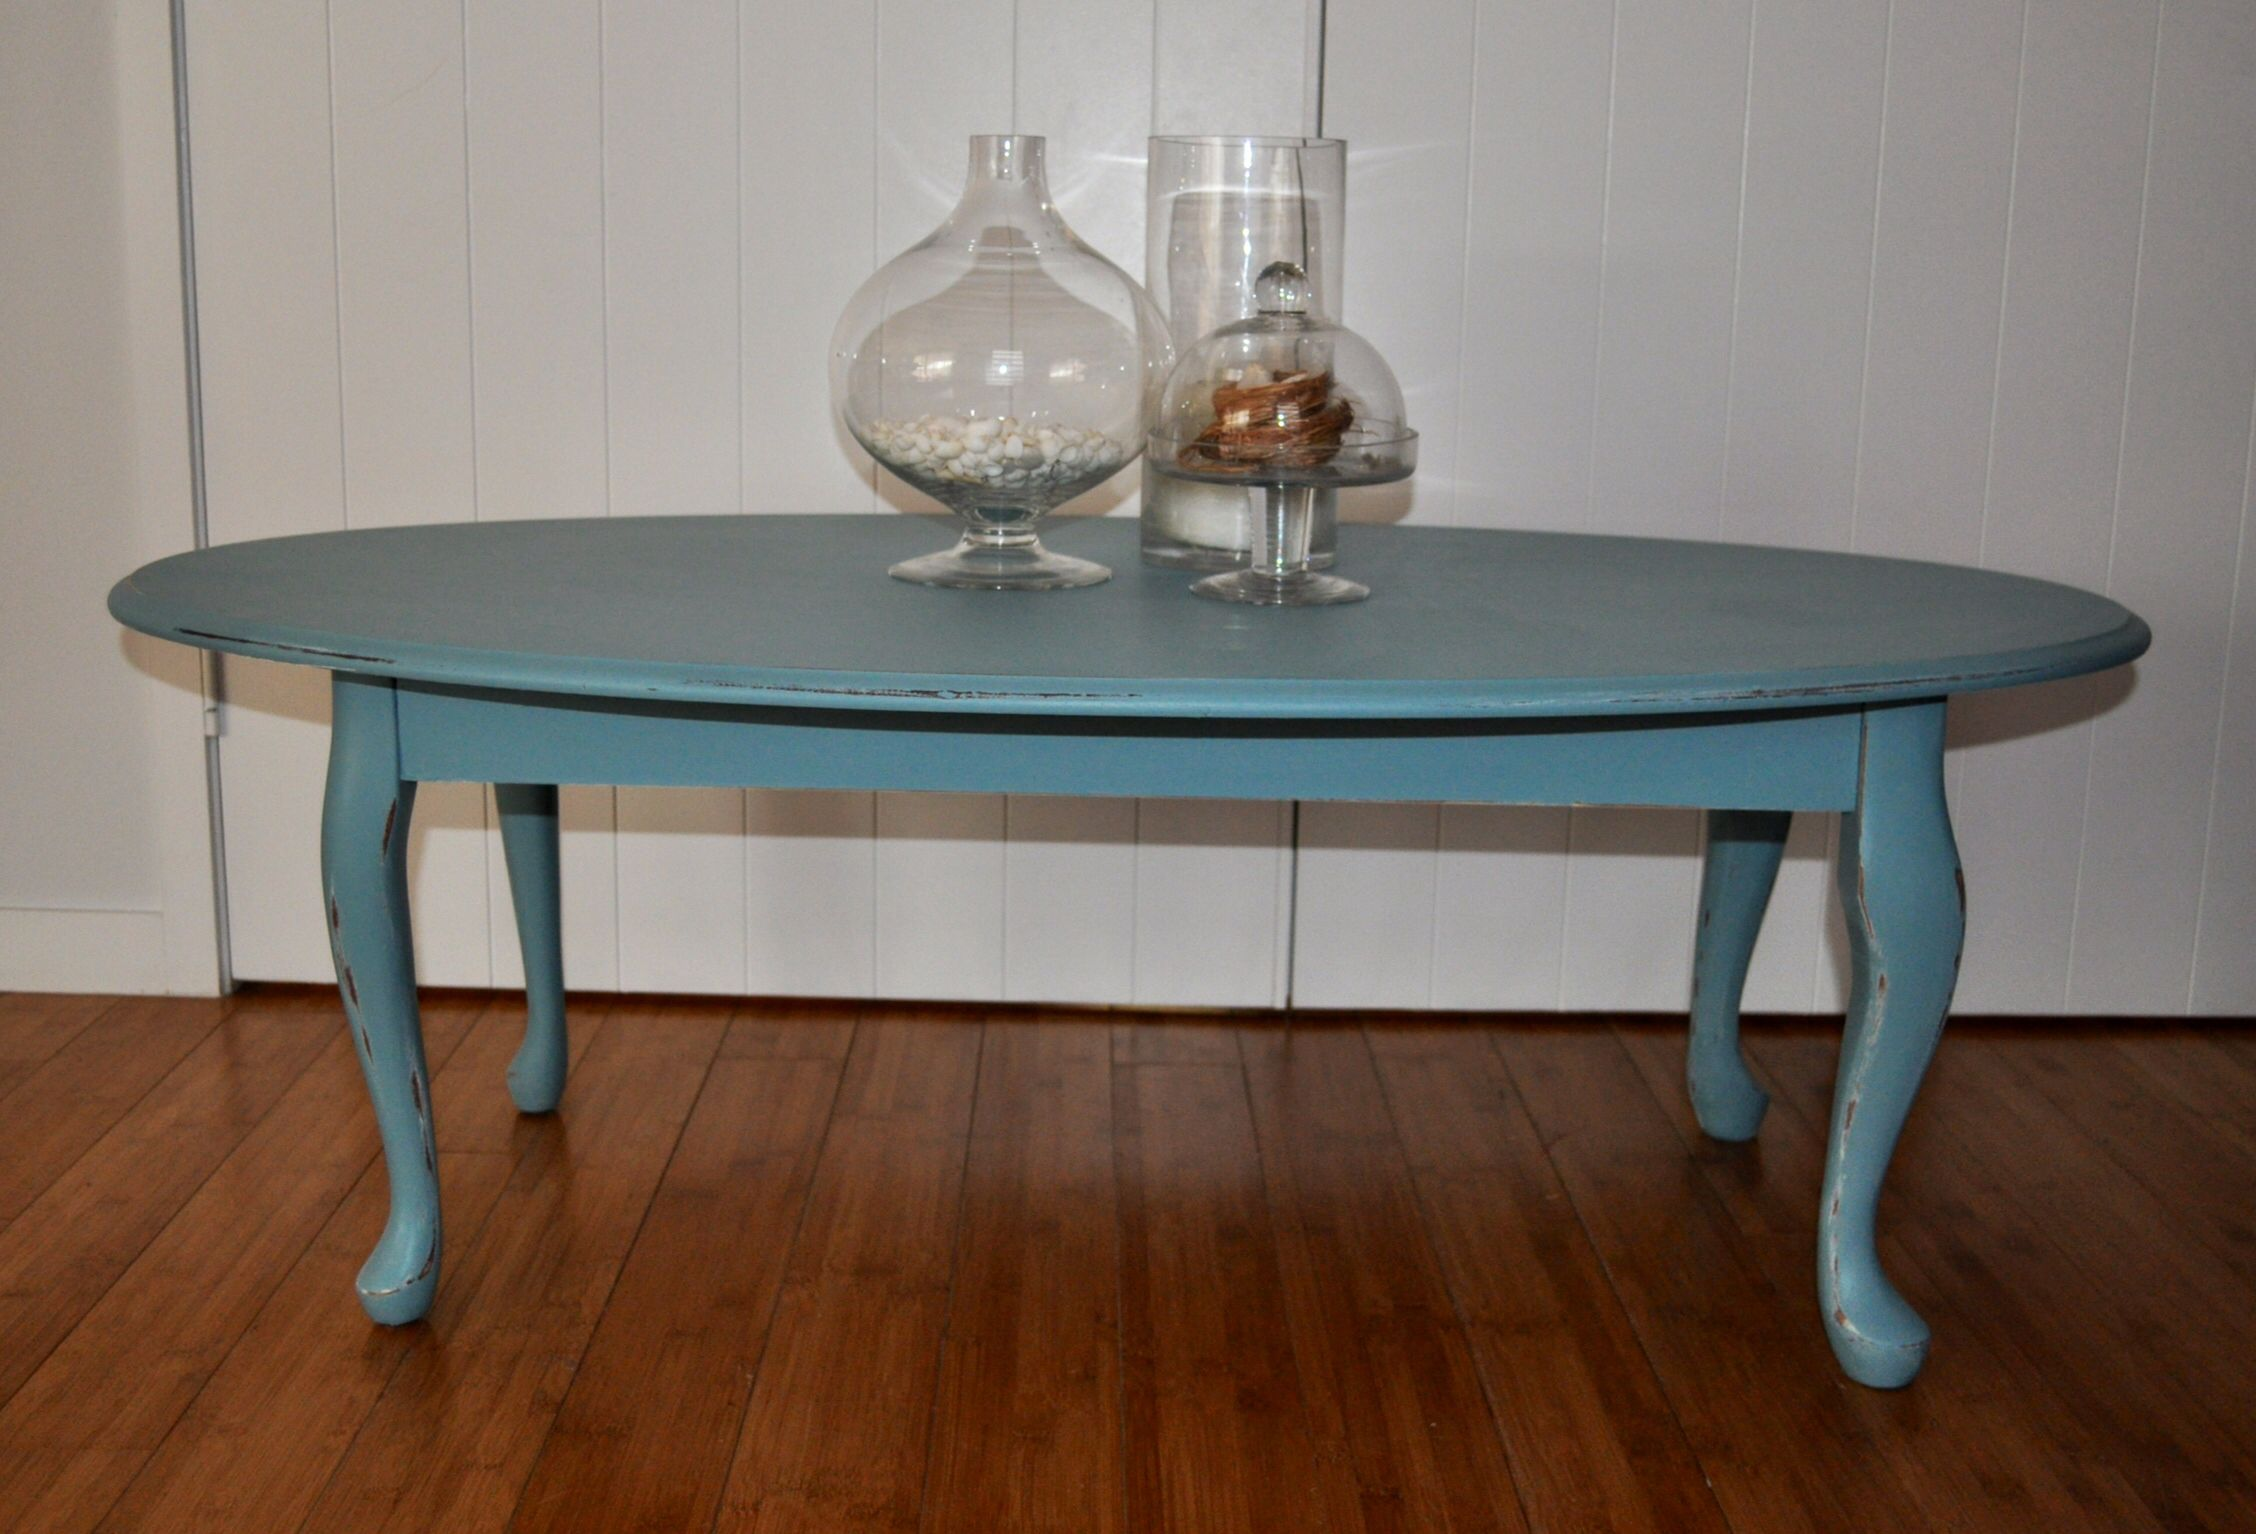 Red Oval Coffee Table Teal Blue Shabby Chic Queen Ann Legs